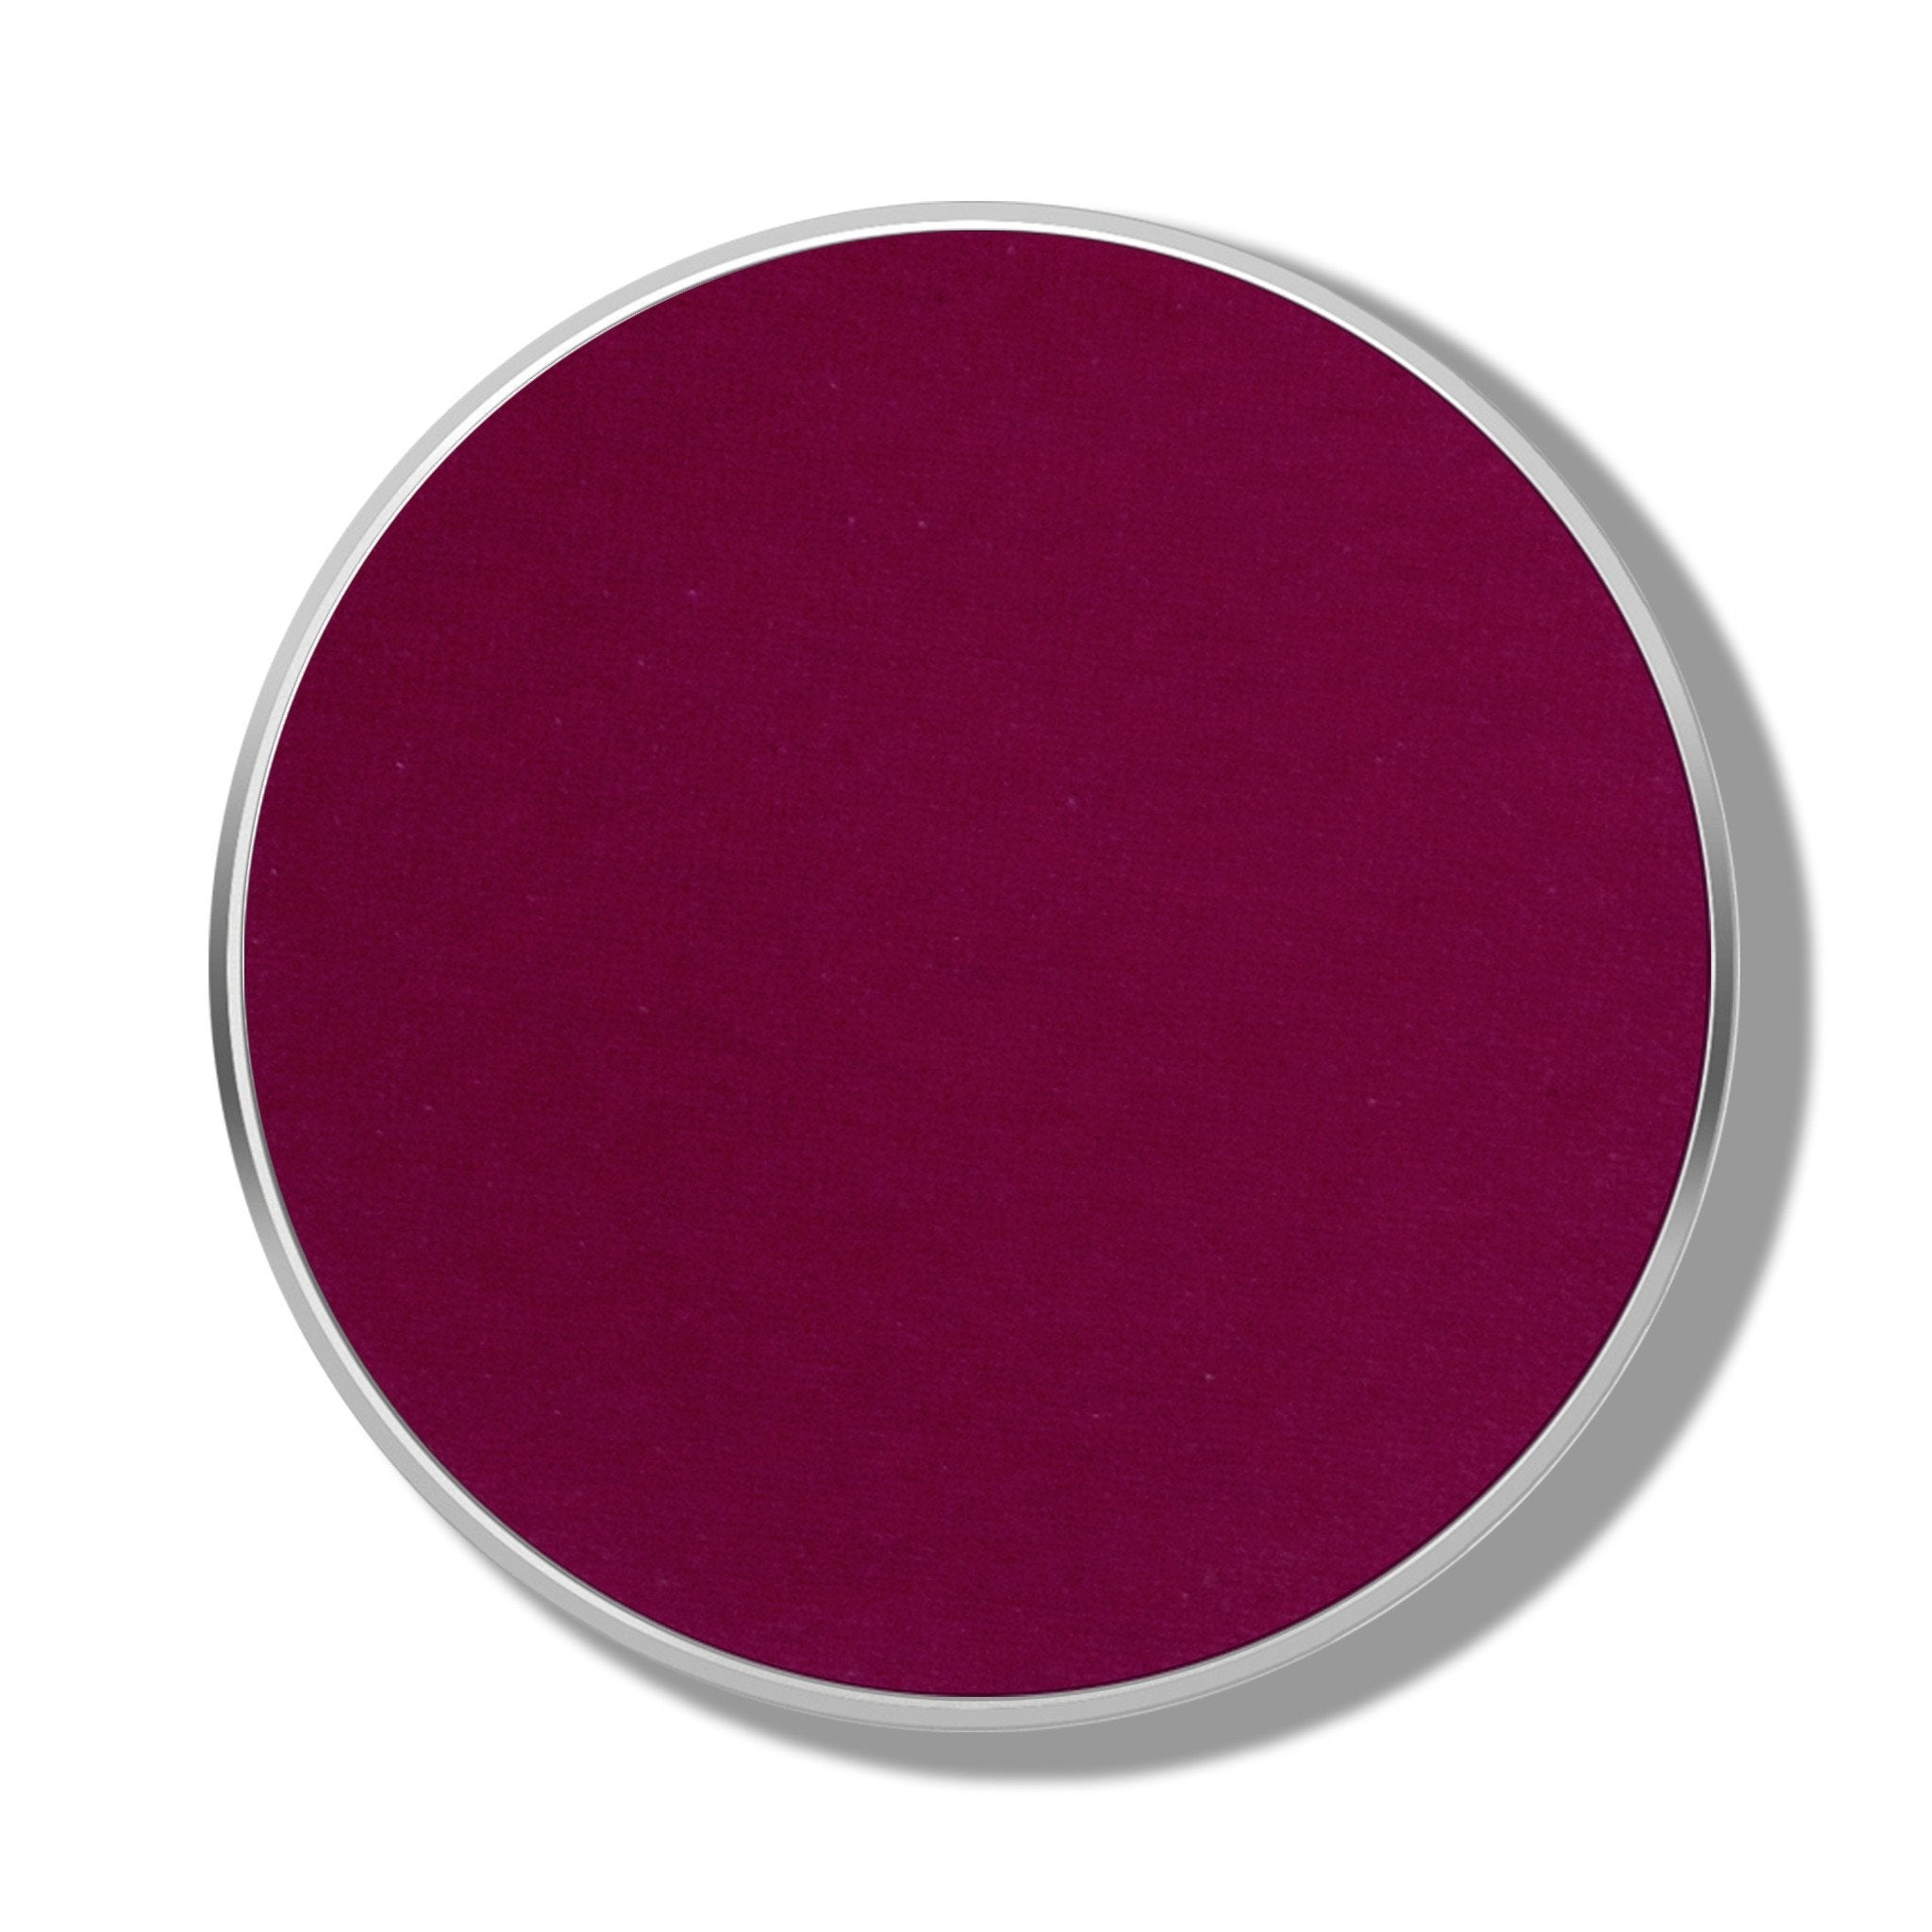 SUVA Beauty Matte Shadow - GetDollied USA